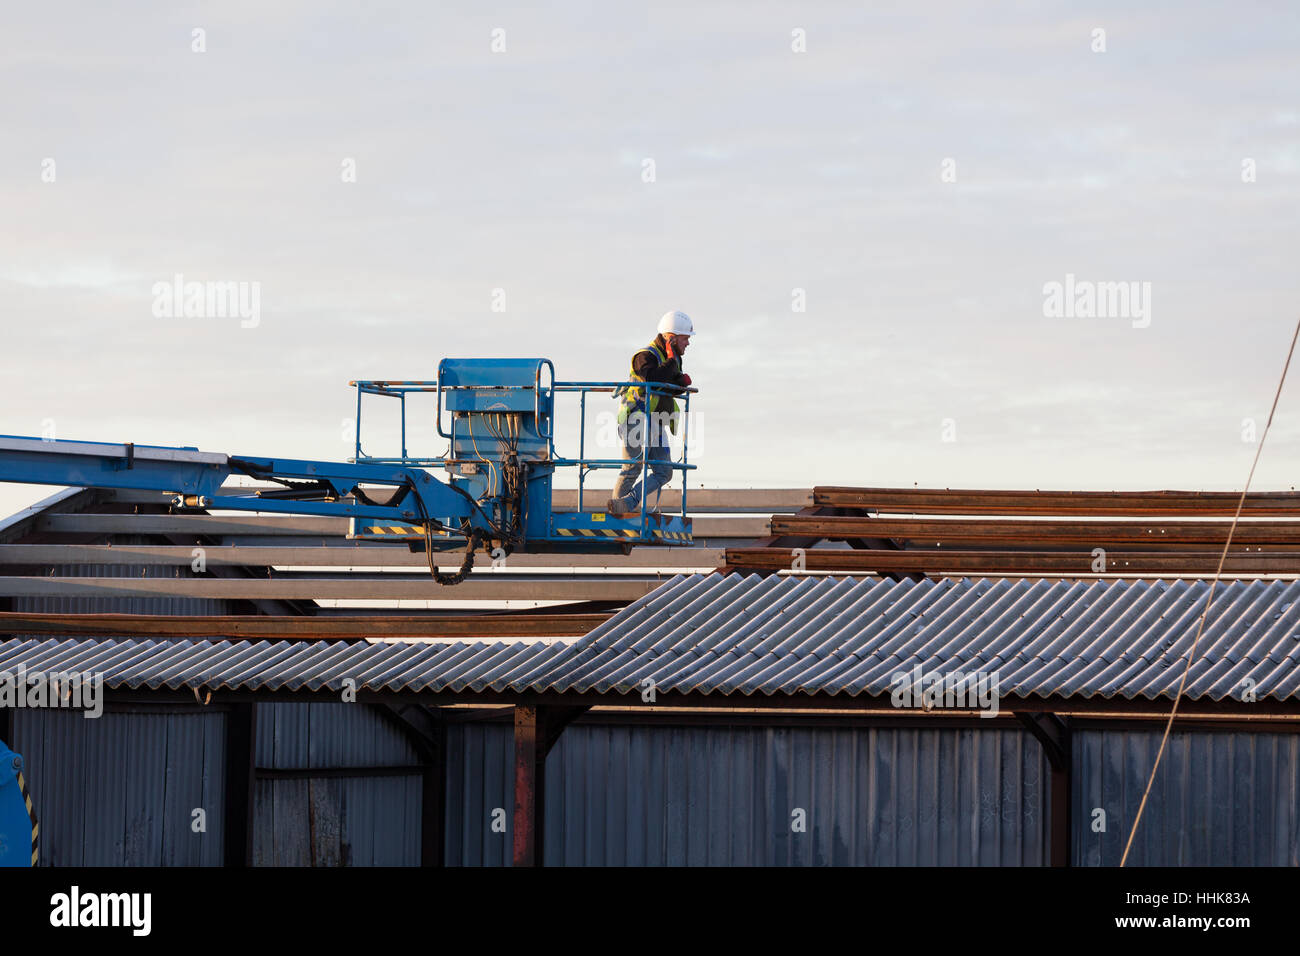 Construction worker with hardhat and reflective vest operates Stock